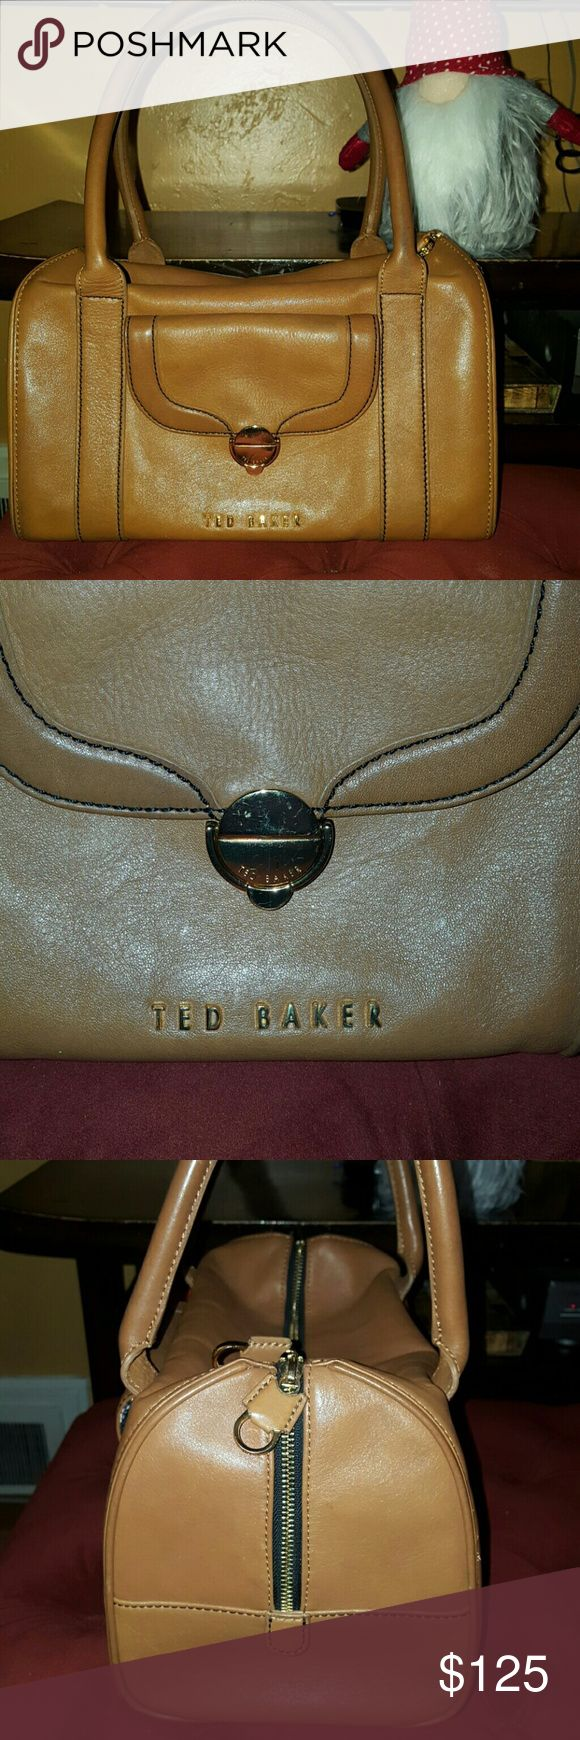 SALE Camel Ted Baker Leather Handbag Satchel Gorgeous handbag from Ted Baker of London. Preloved condition. Some minor scratches. Some scratches on gold hardware. Handles are a bit darker from use. Inside has signature bulldog lining. No stains or spots. Whole bag has been professionally cleaned inside and out. Smoke free, pet free home. Ted Baker Bags